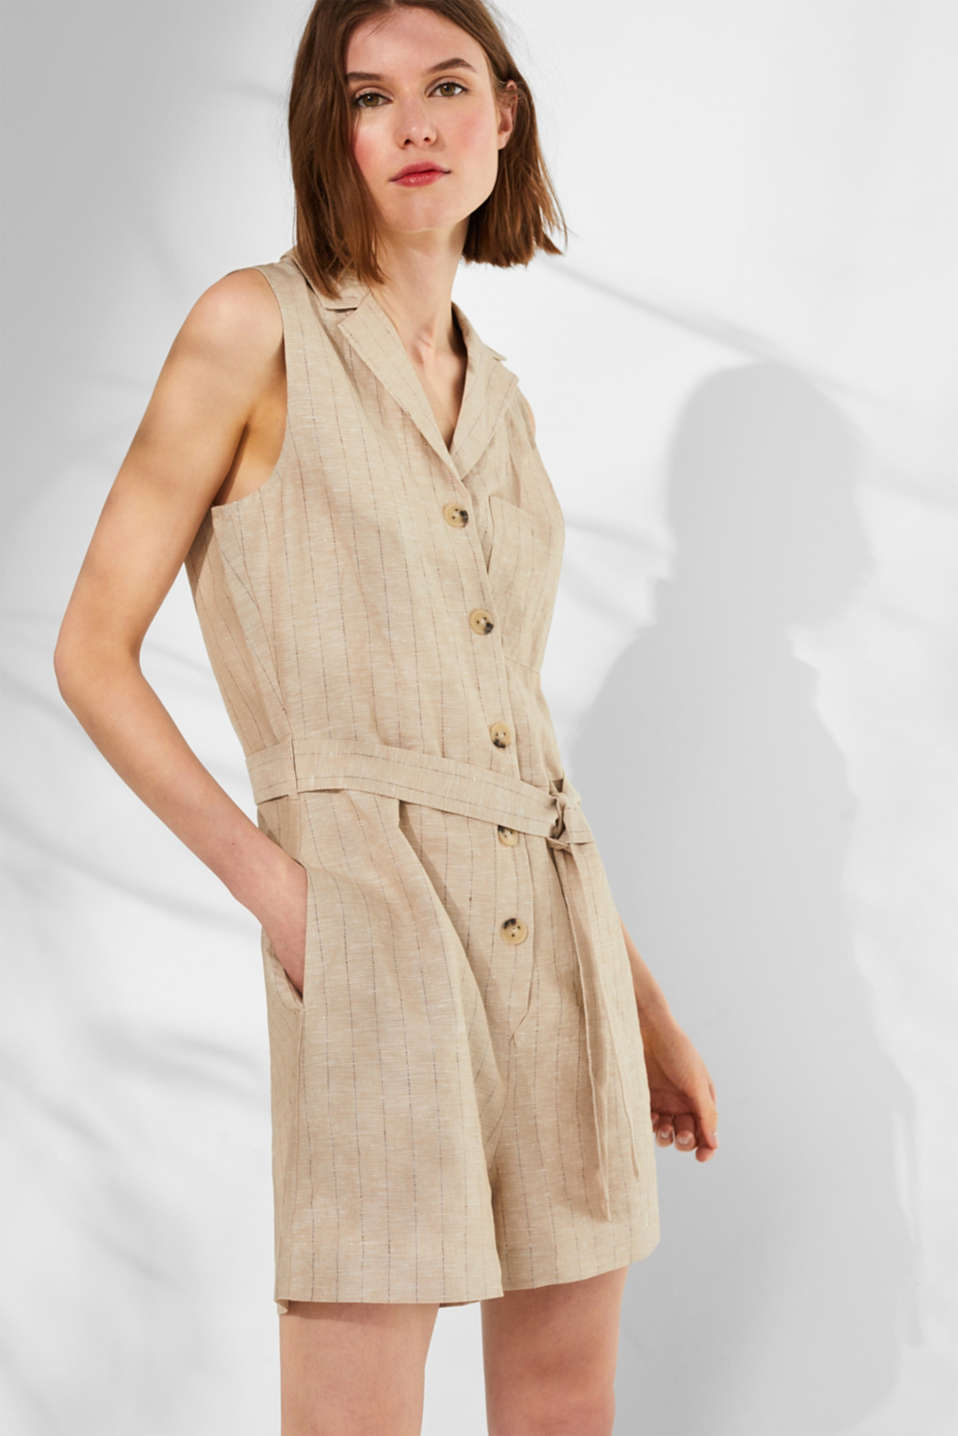 Esprit - Made of blended linen: pinstripe playsuit